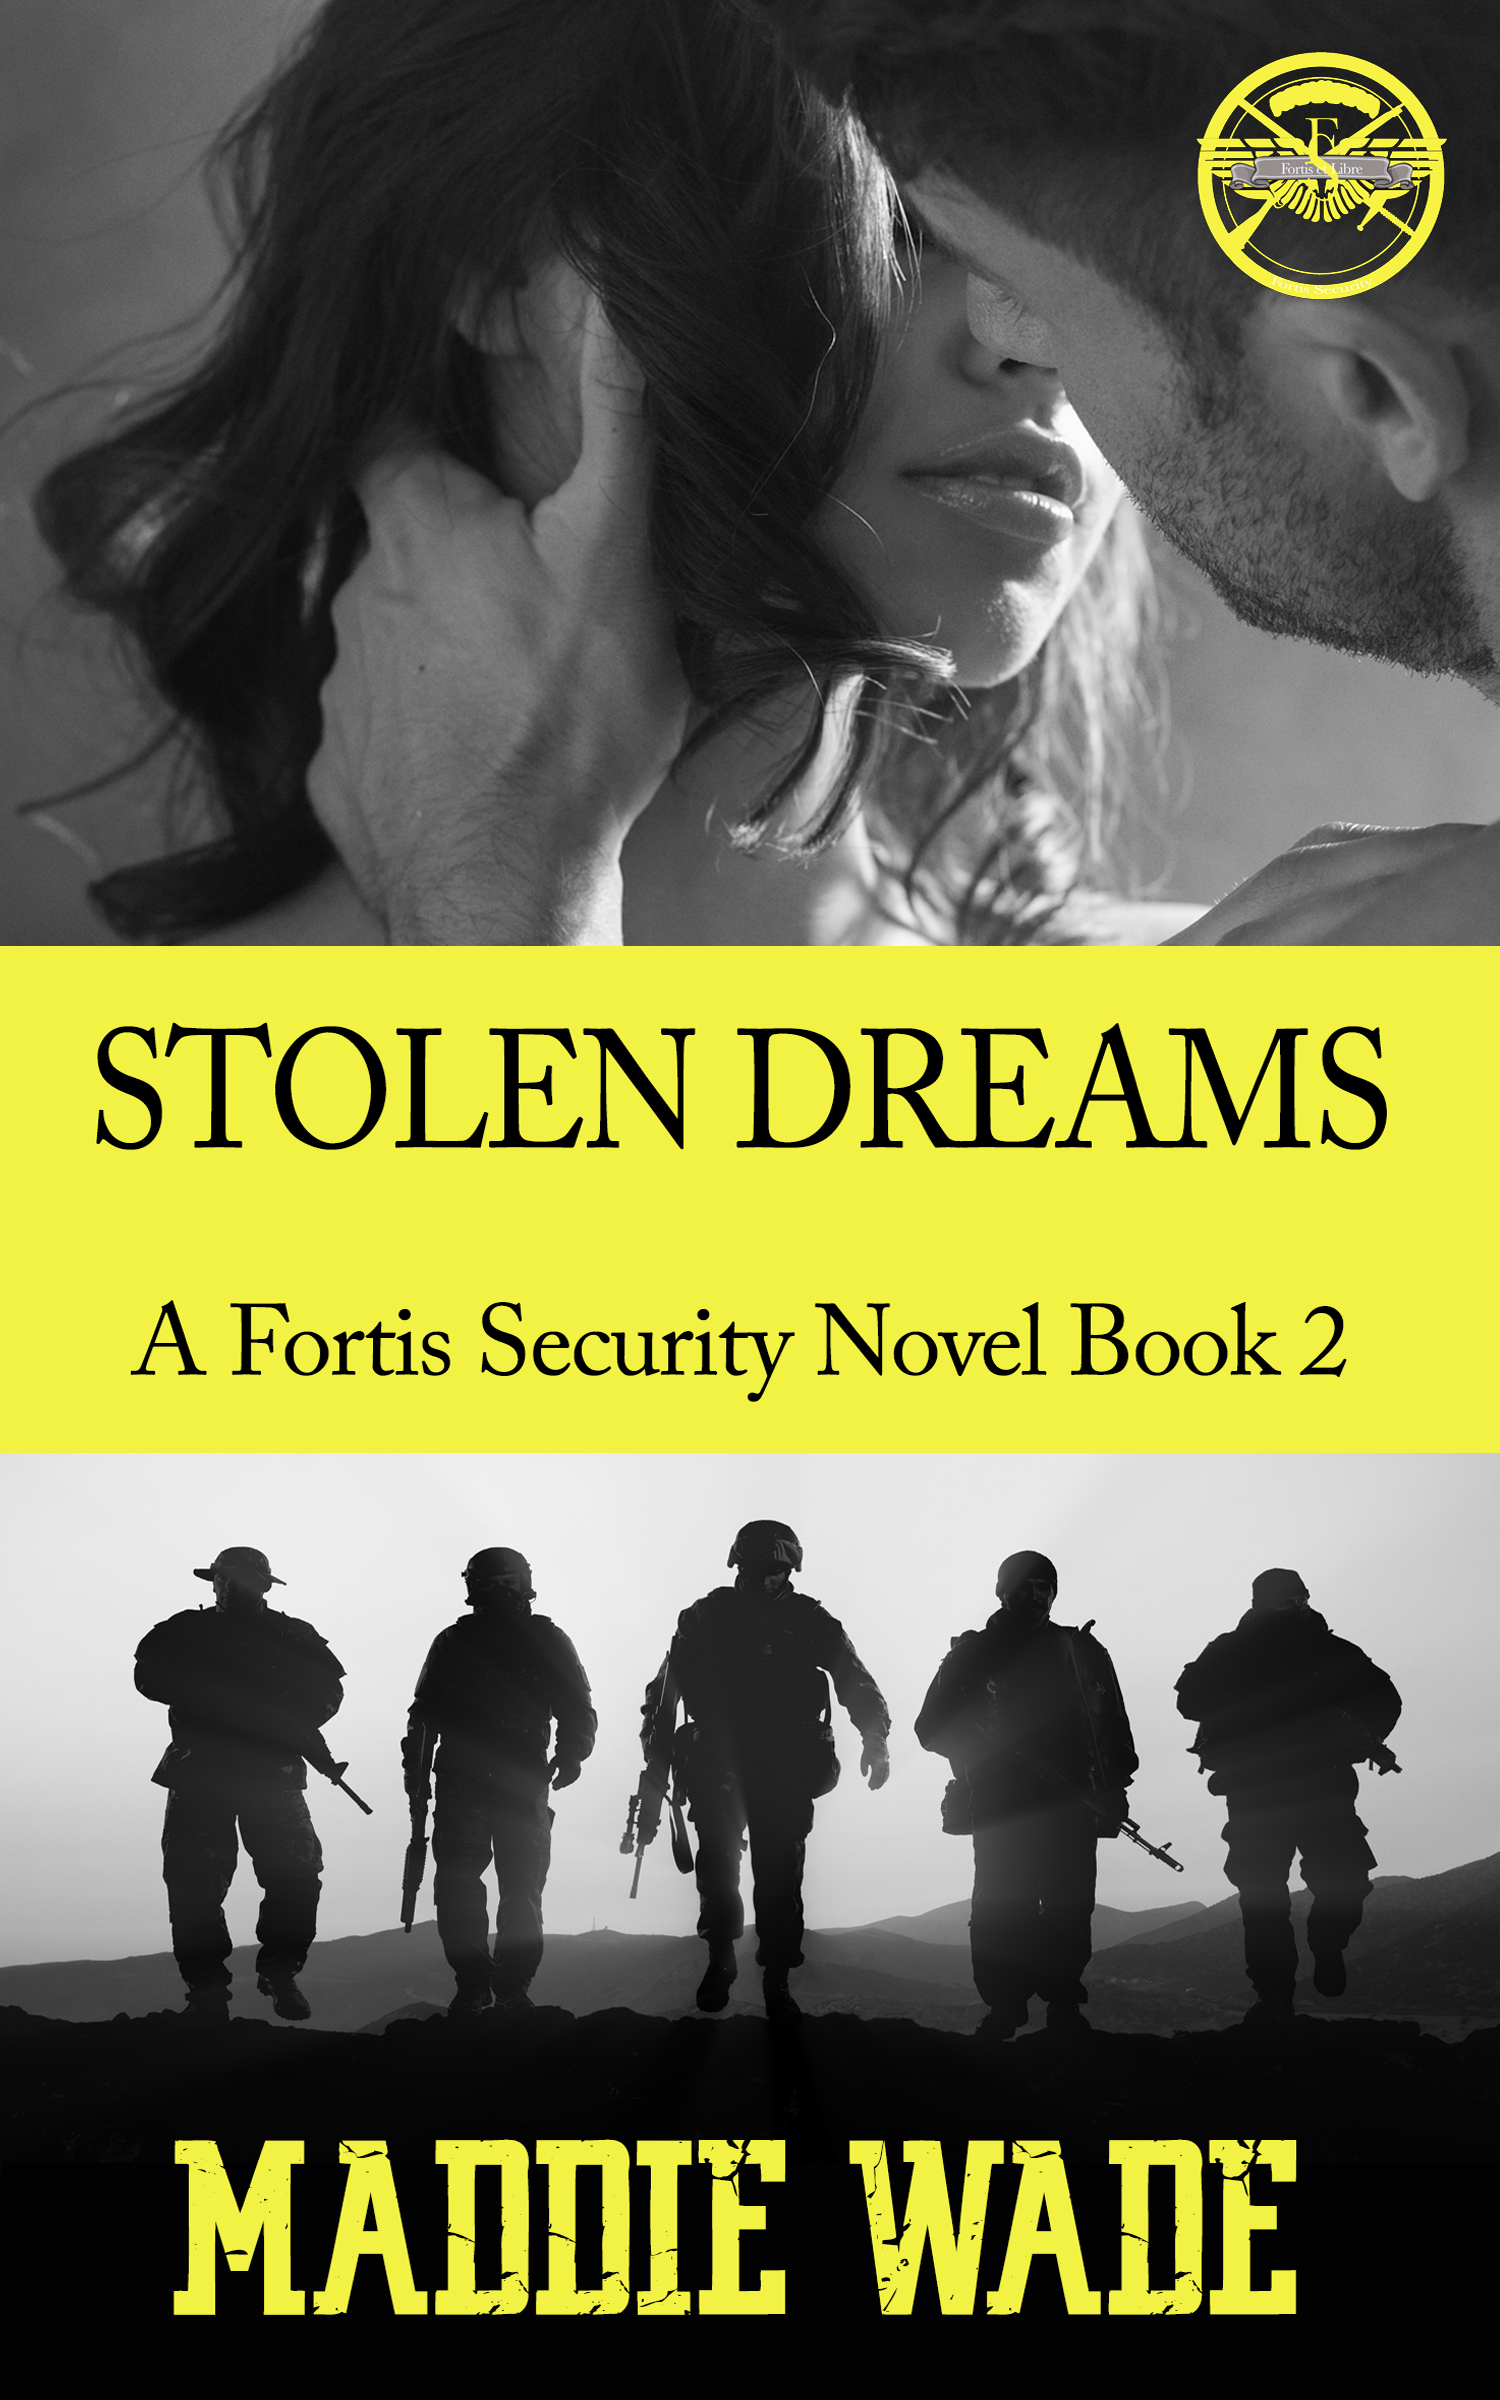 image of book cover named stolen dreams